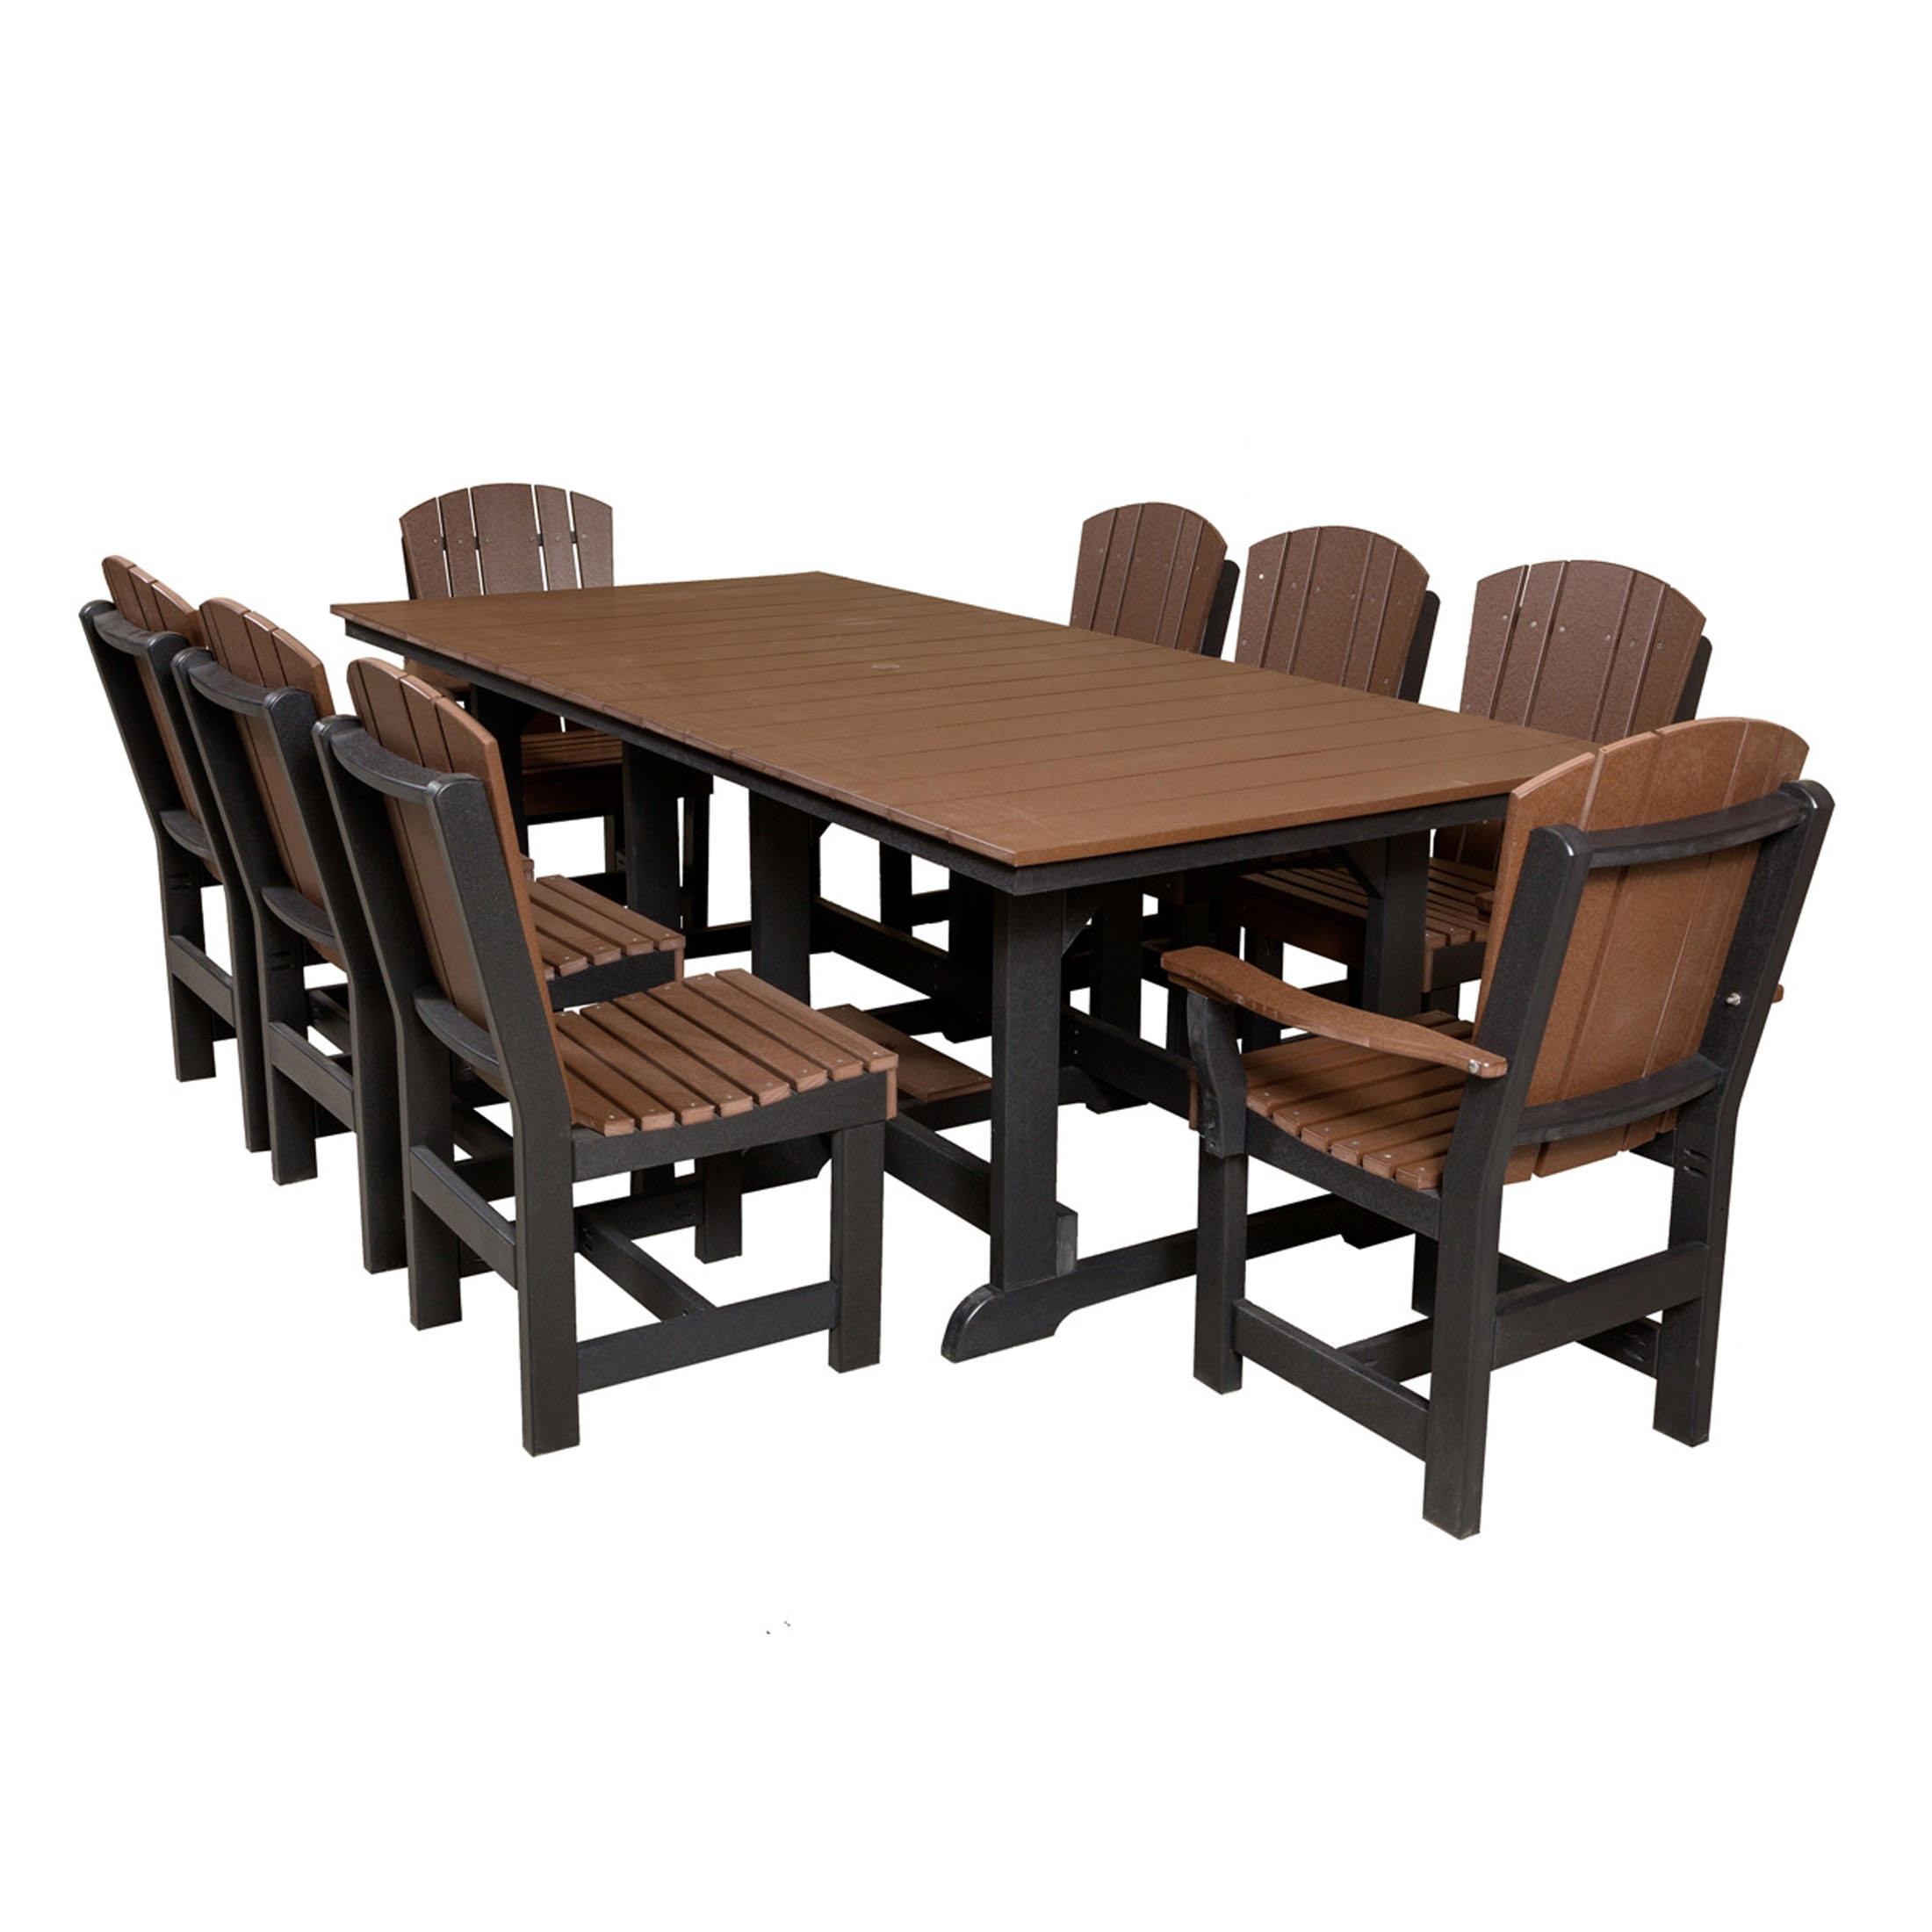 Little Cottage LCC-190 Heritage Dining Set